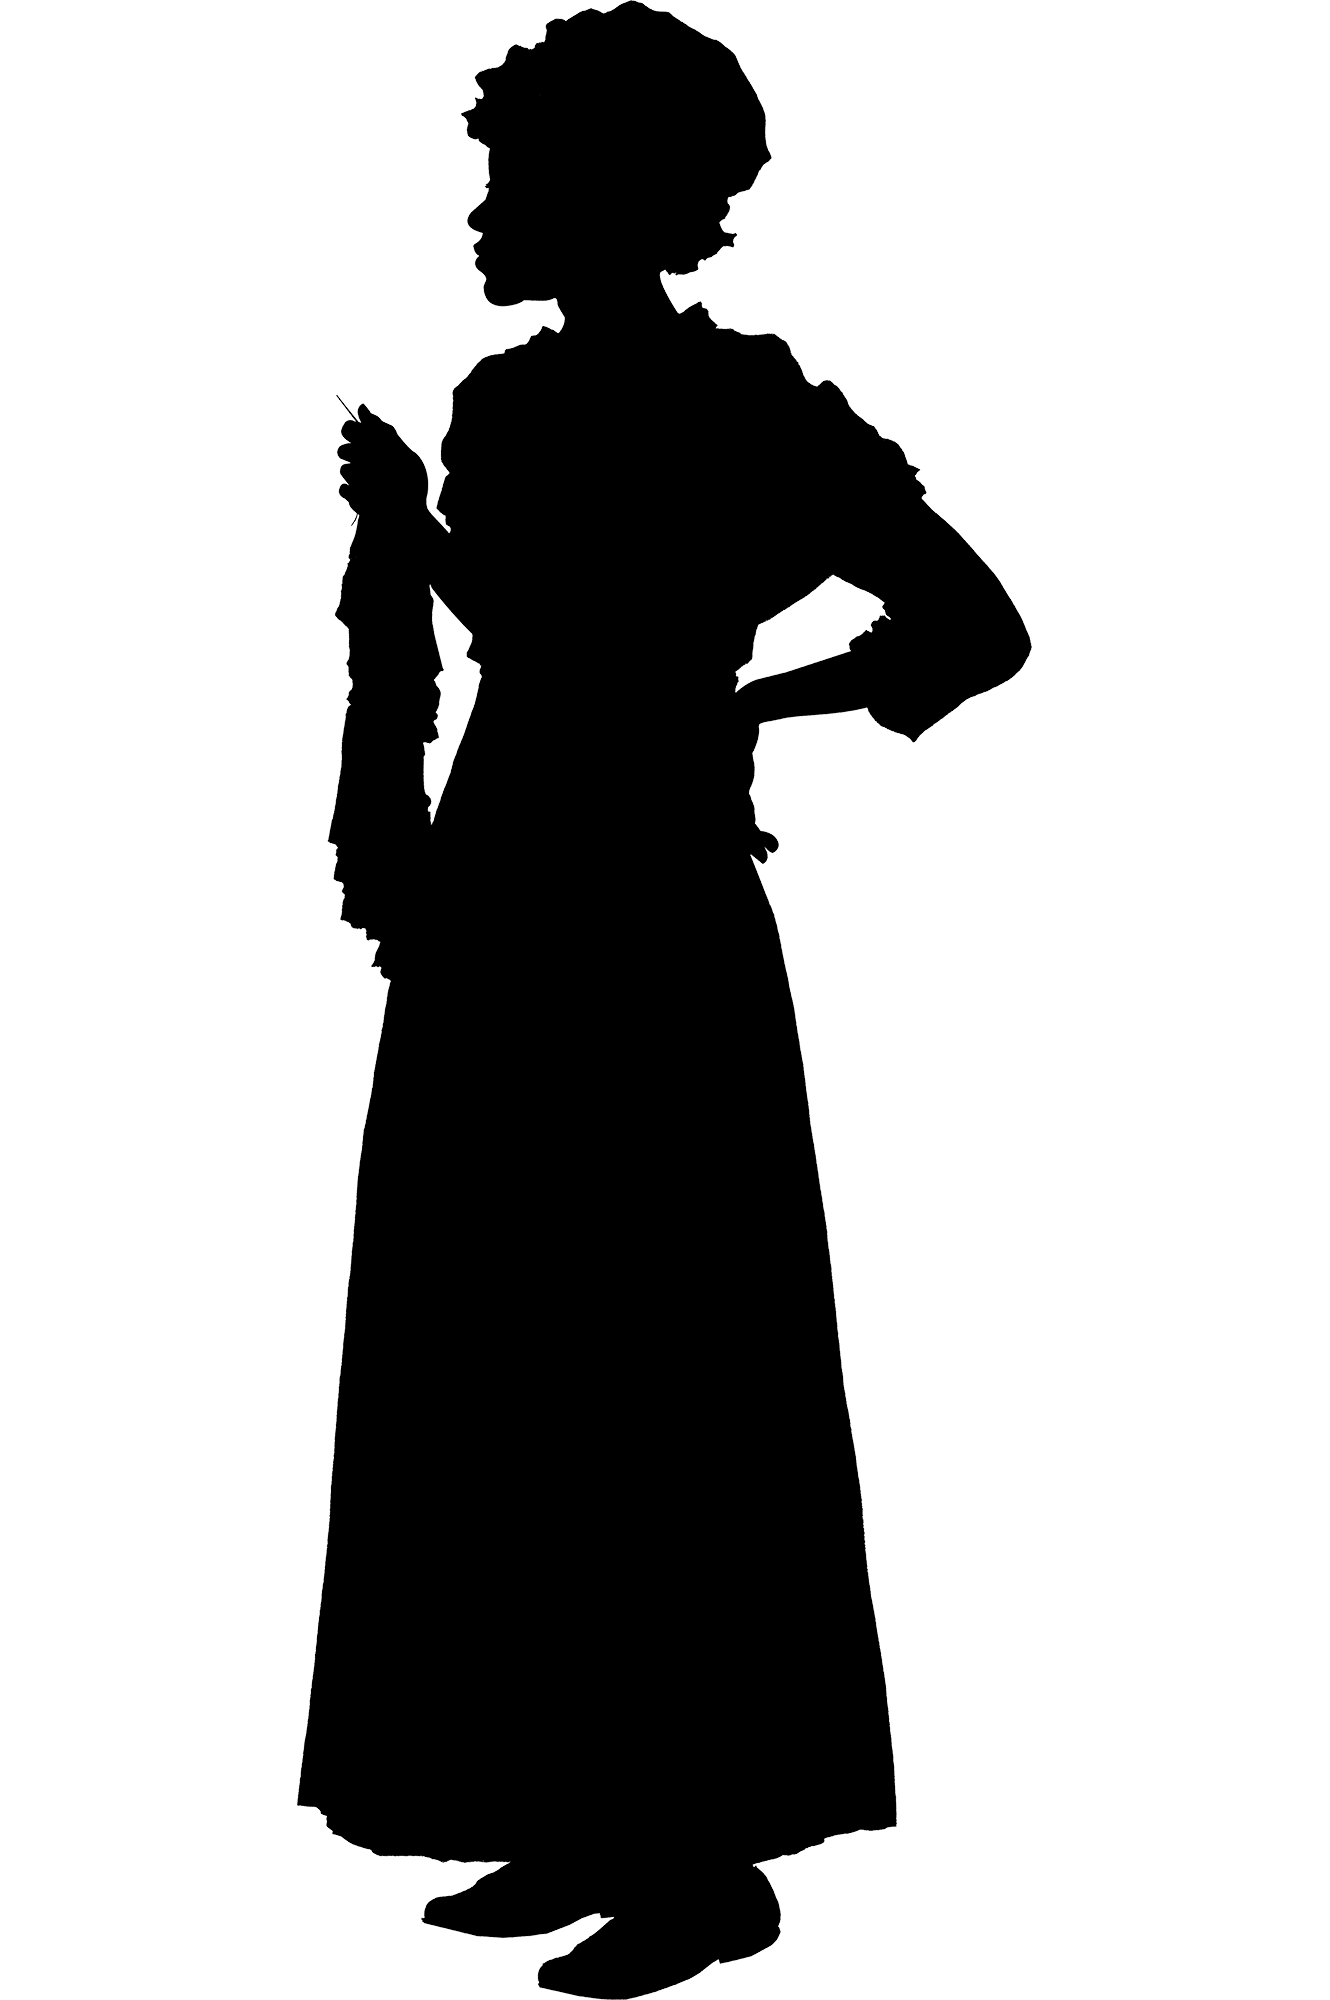 Silhouette of Ona Judge from Lives Bound Together, Mount Vernon.